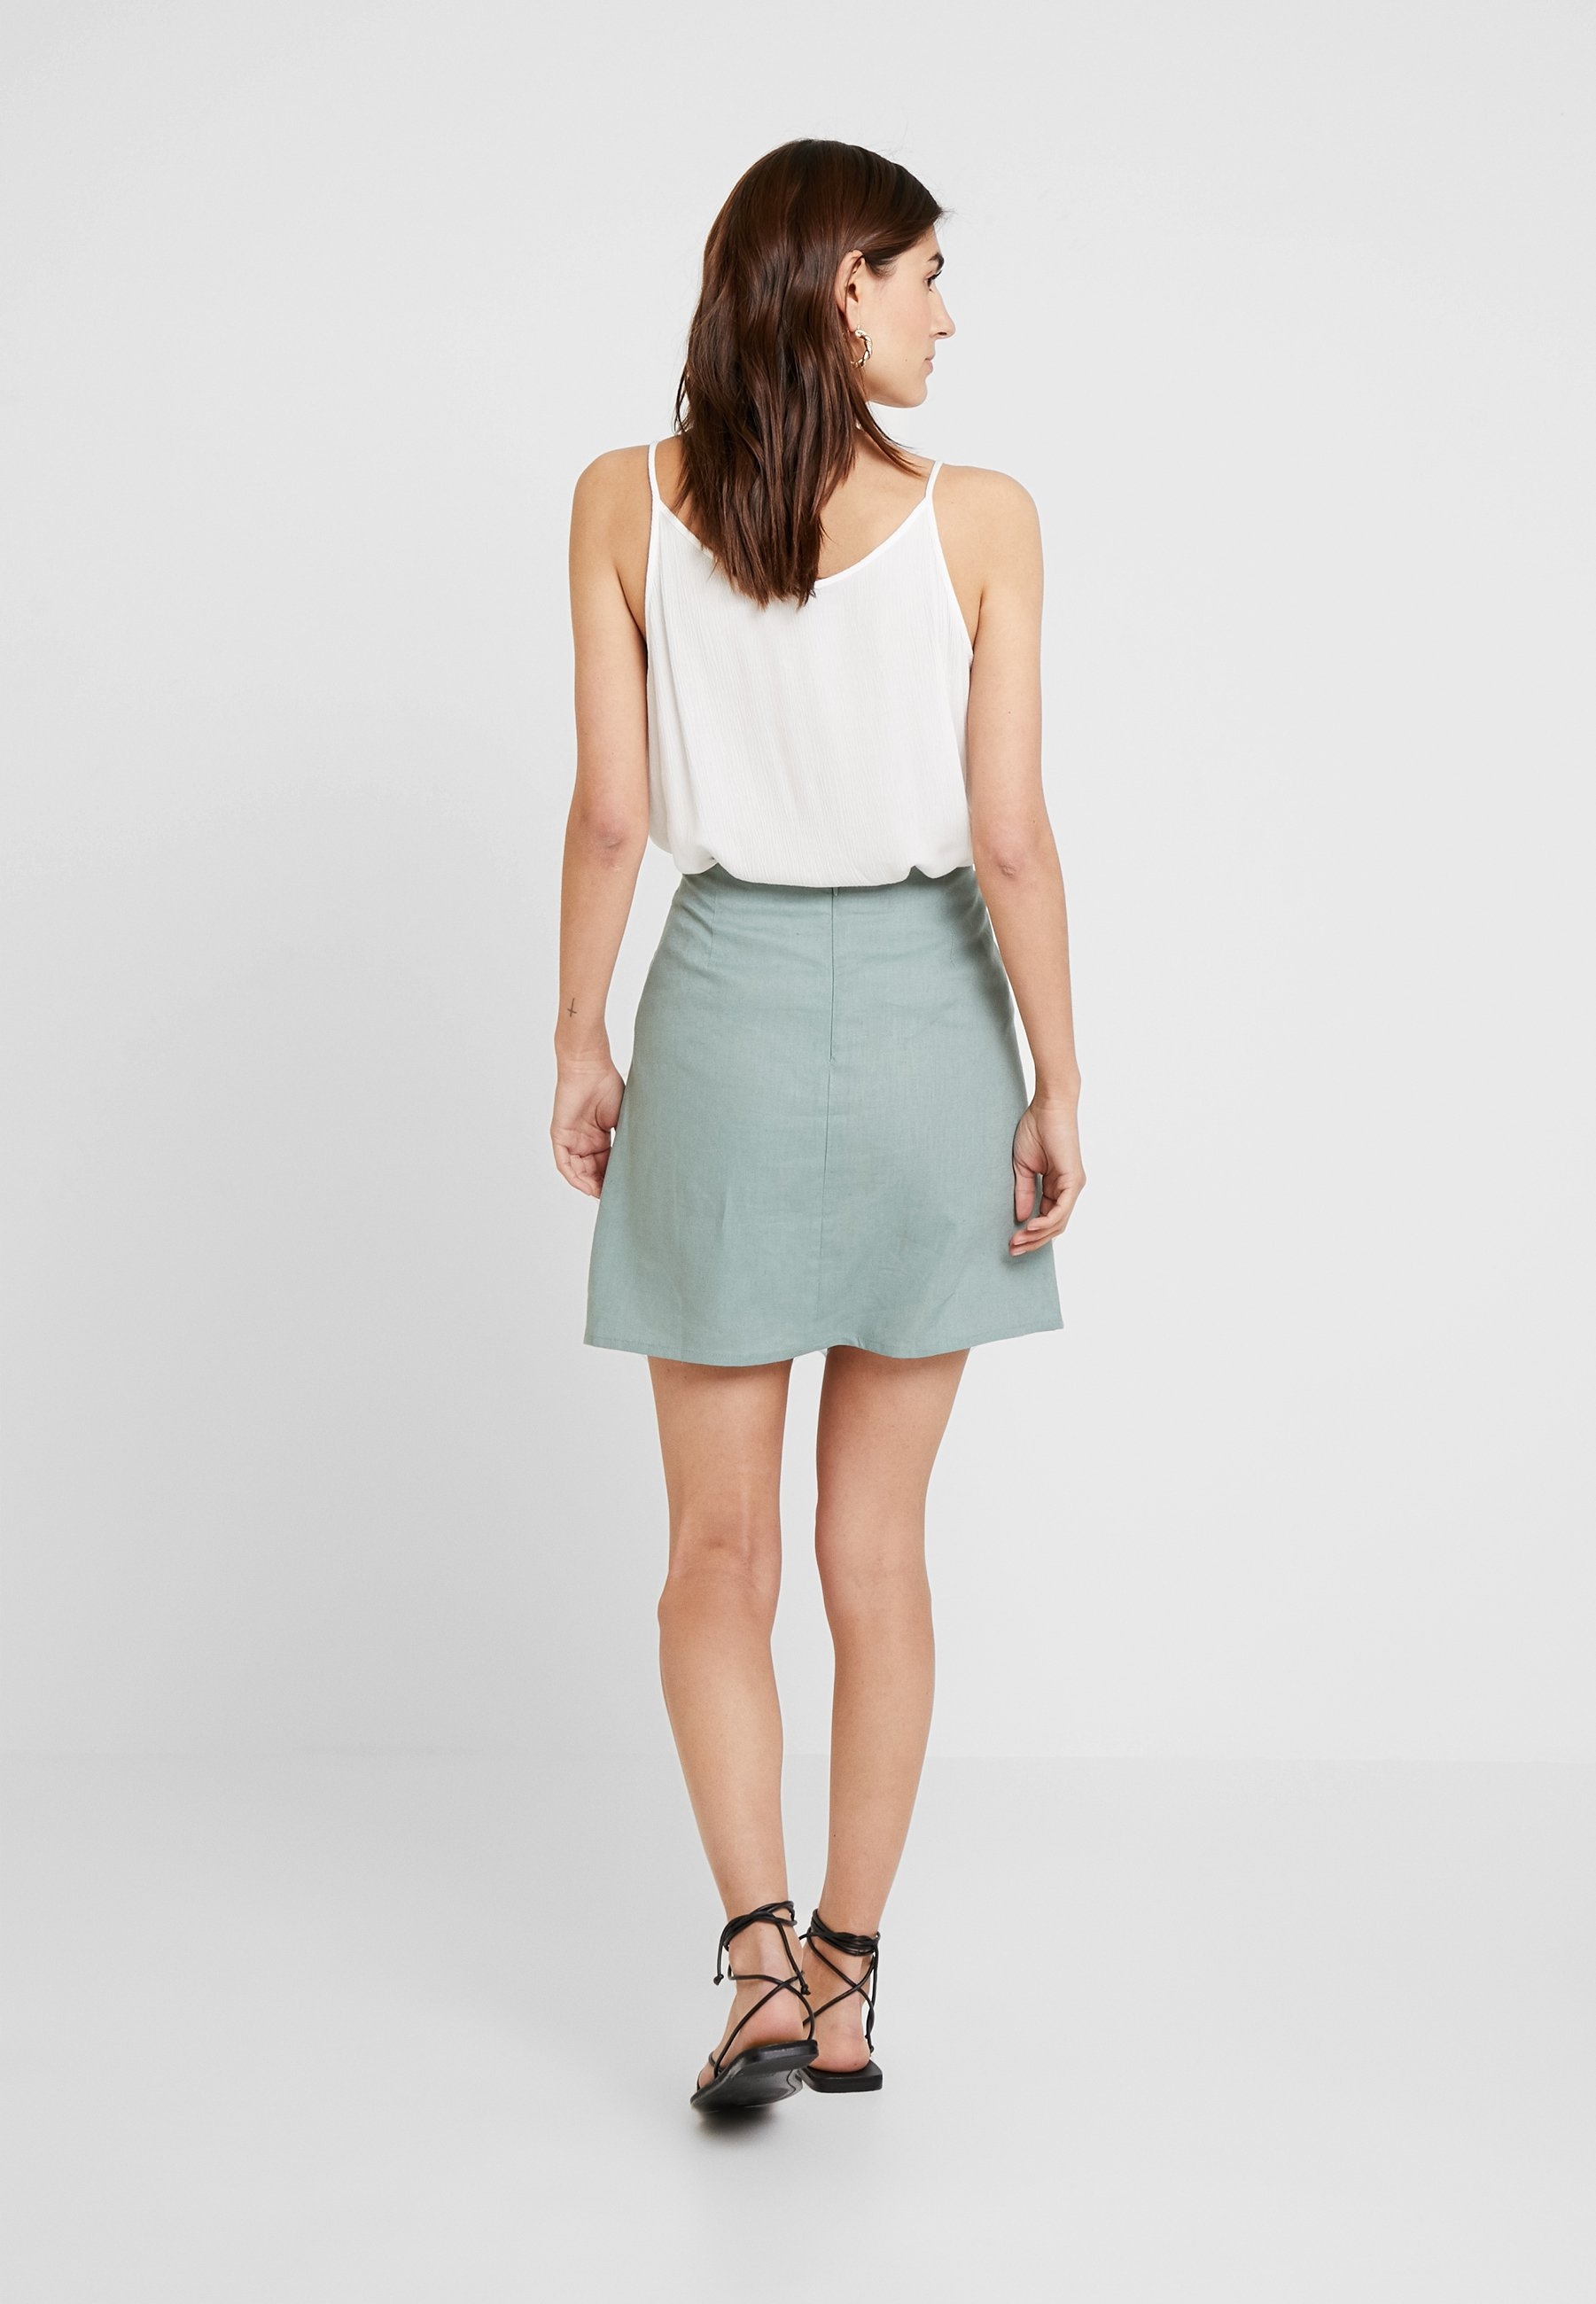 With Faded draft Olive ButtonsJupe Re Trapèze Skirt rshCtQd